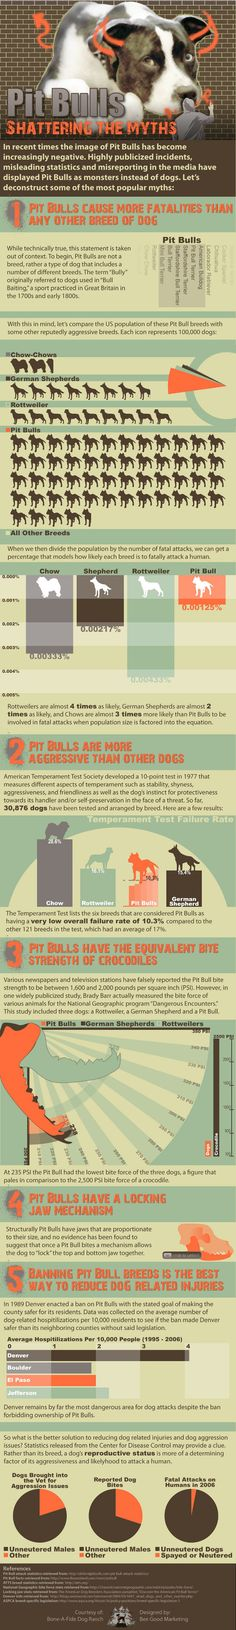 Are pit bulls dangerous? The truth behind the media stories.  #pitbull #infographic